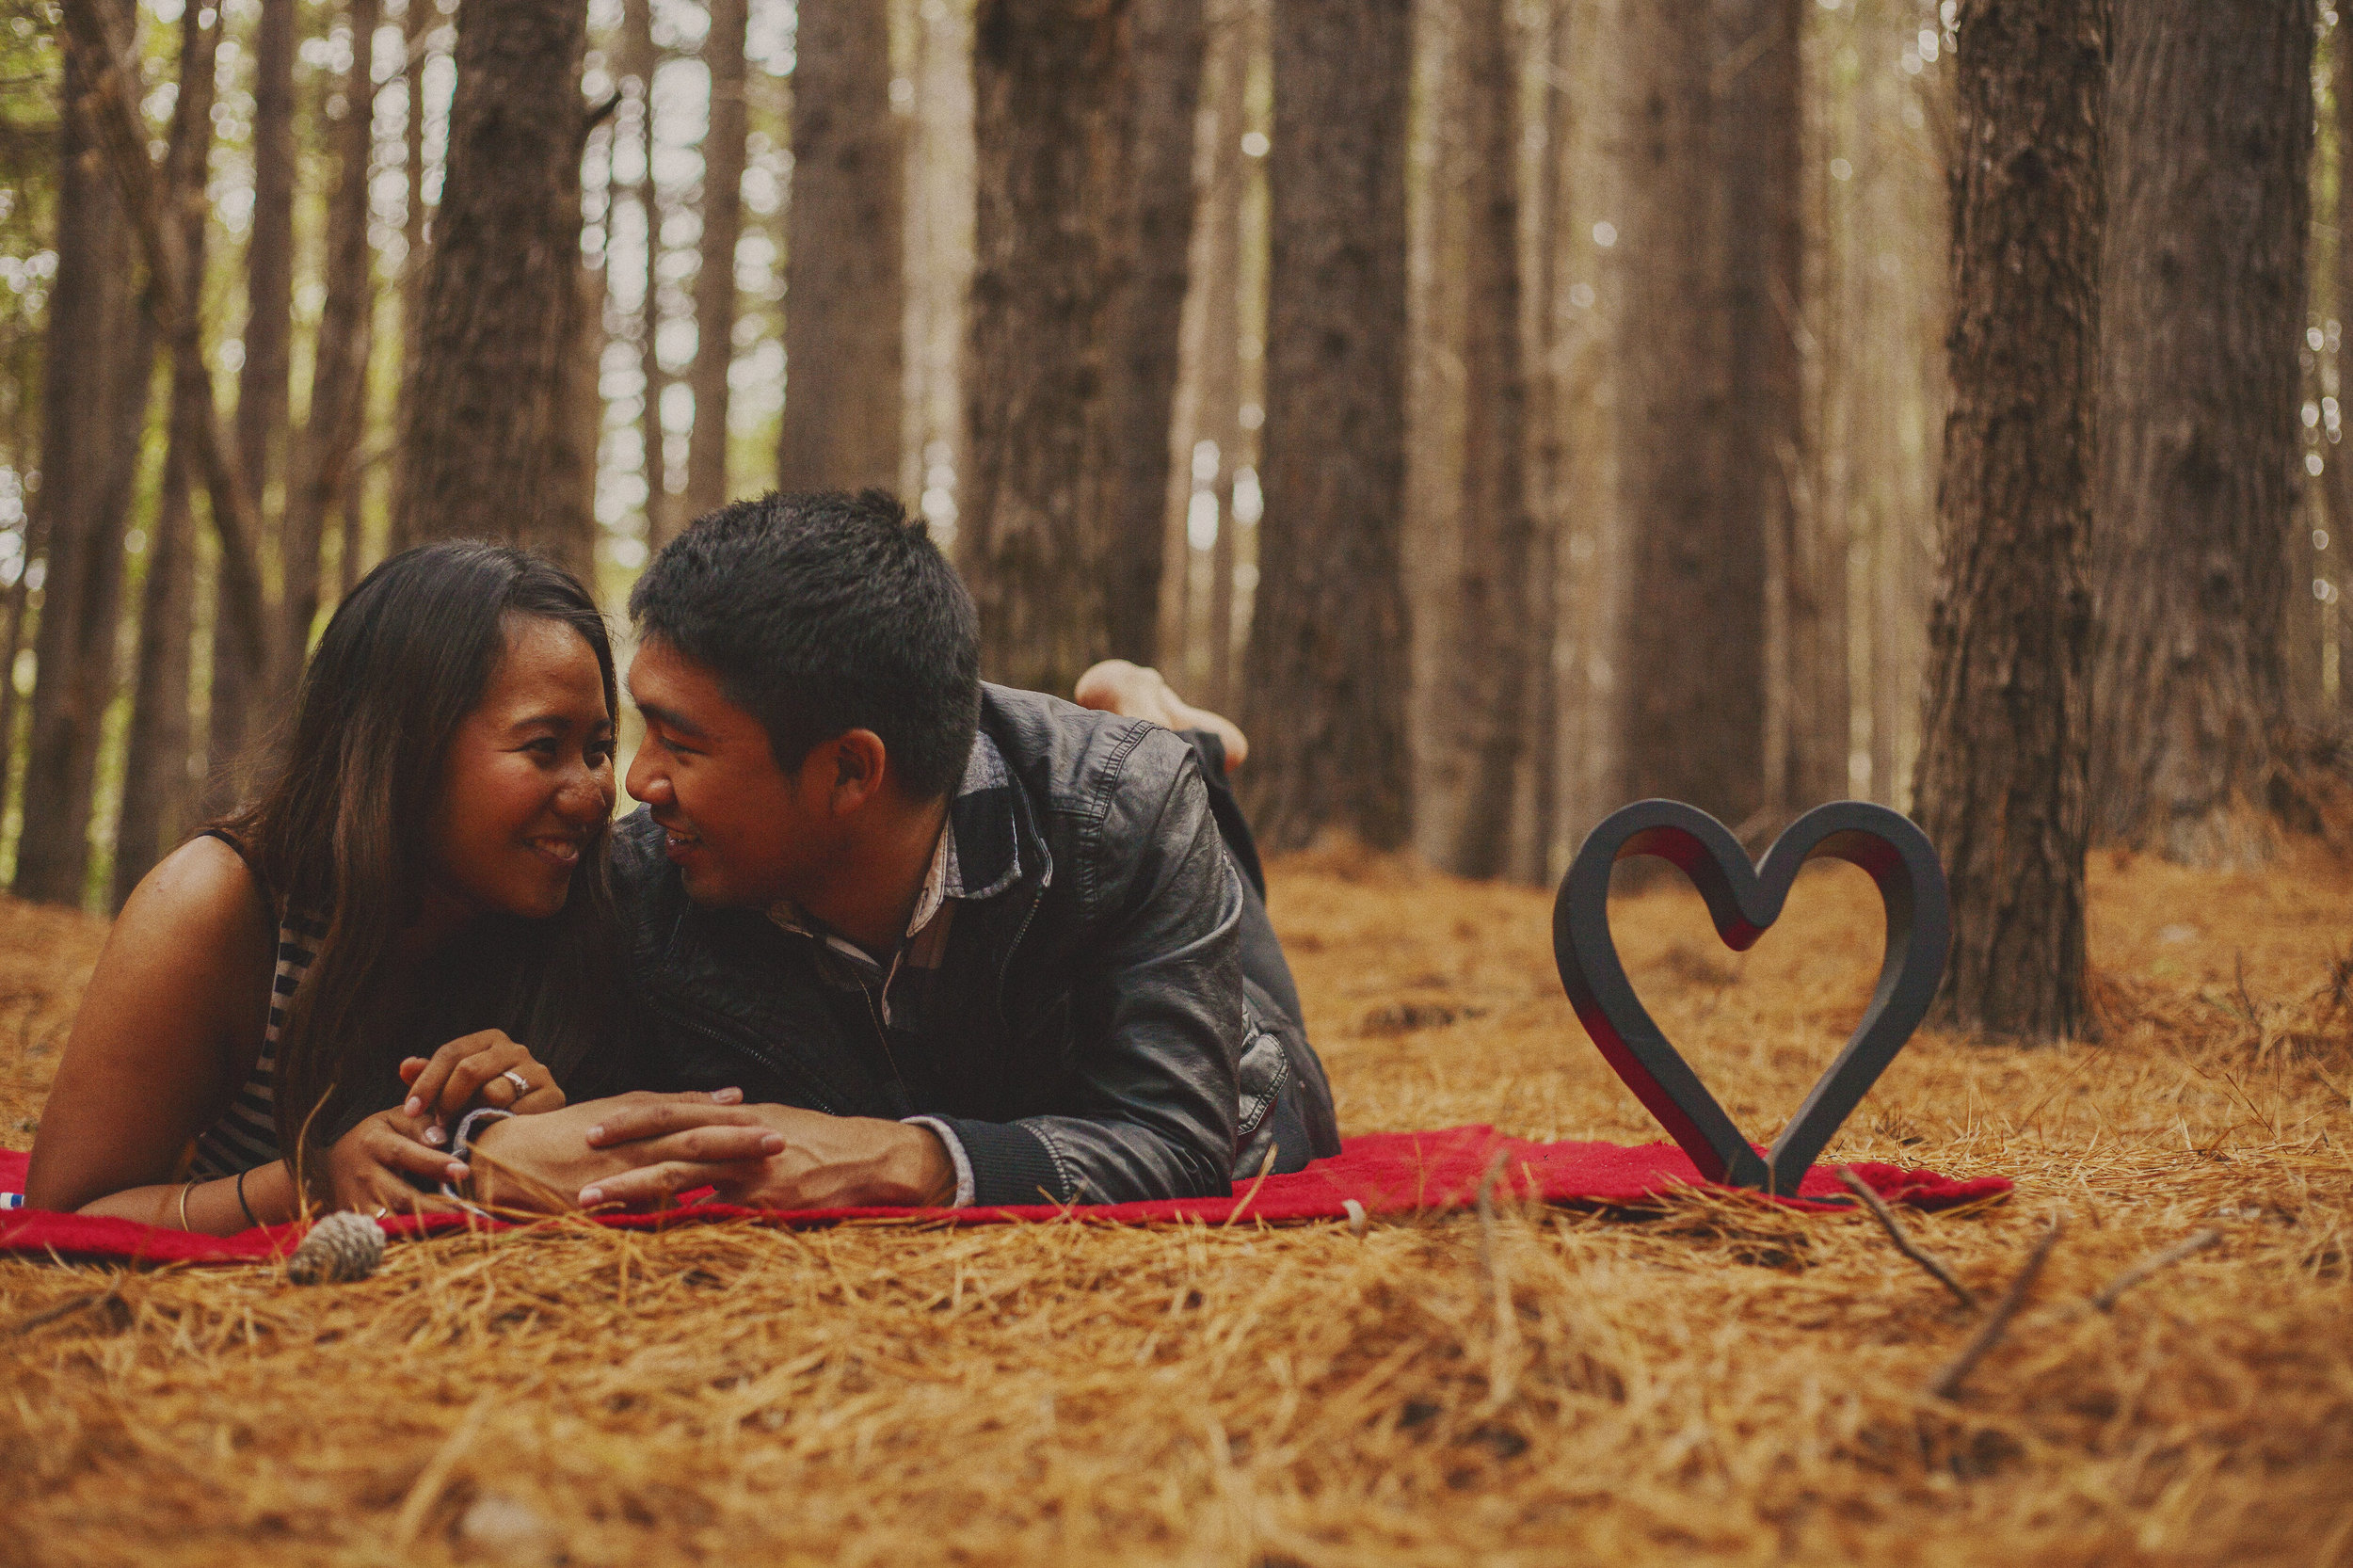 angie-diaz-photography-maui-upcountry-engagement-33.jpg